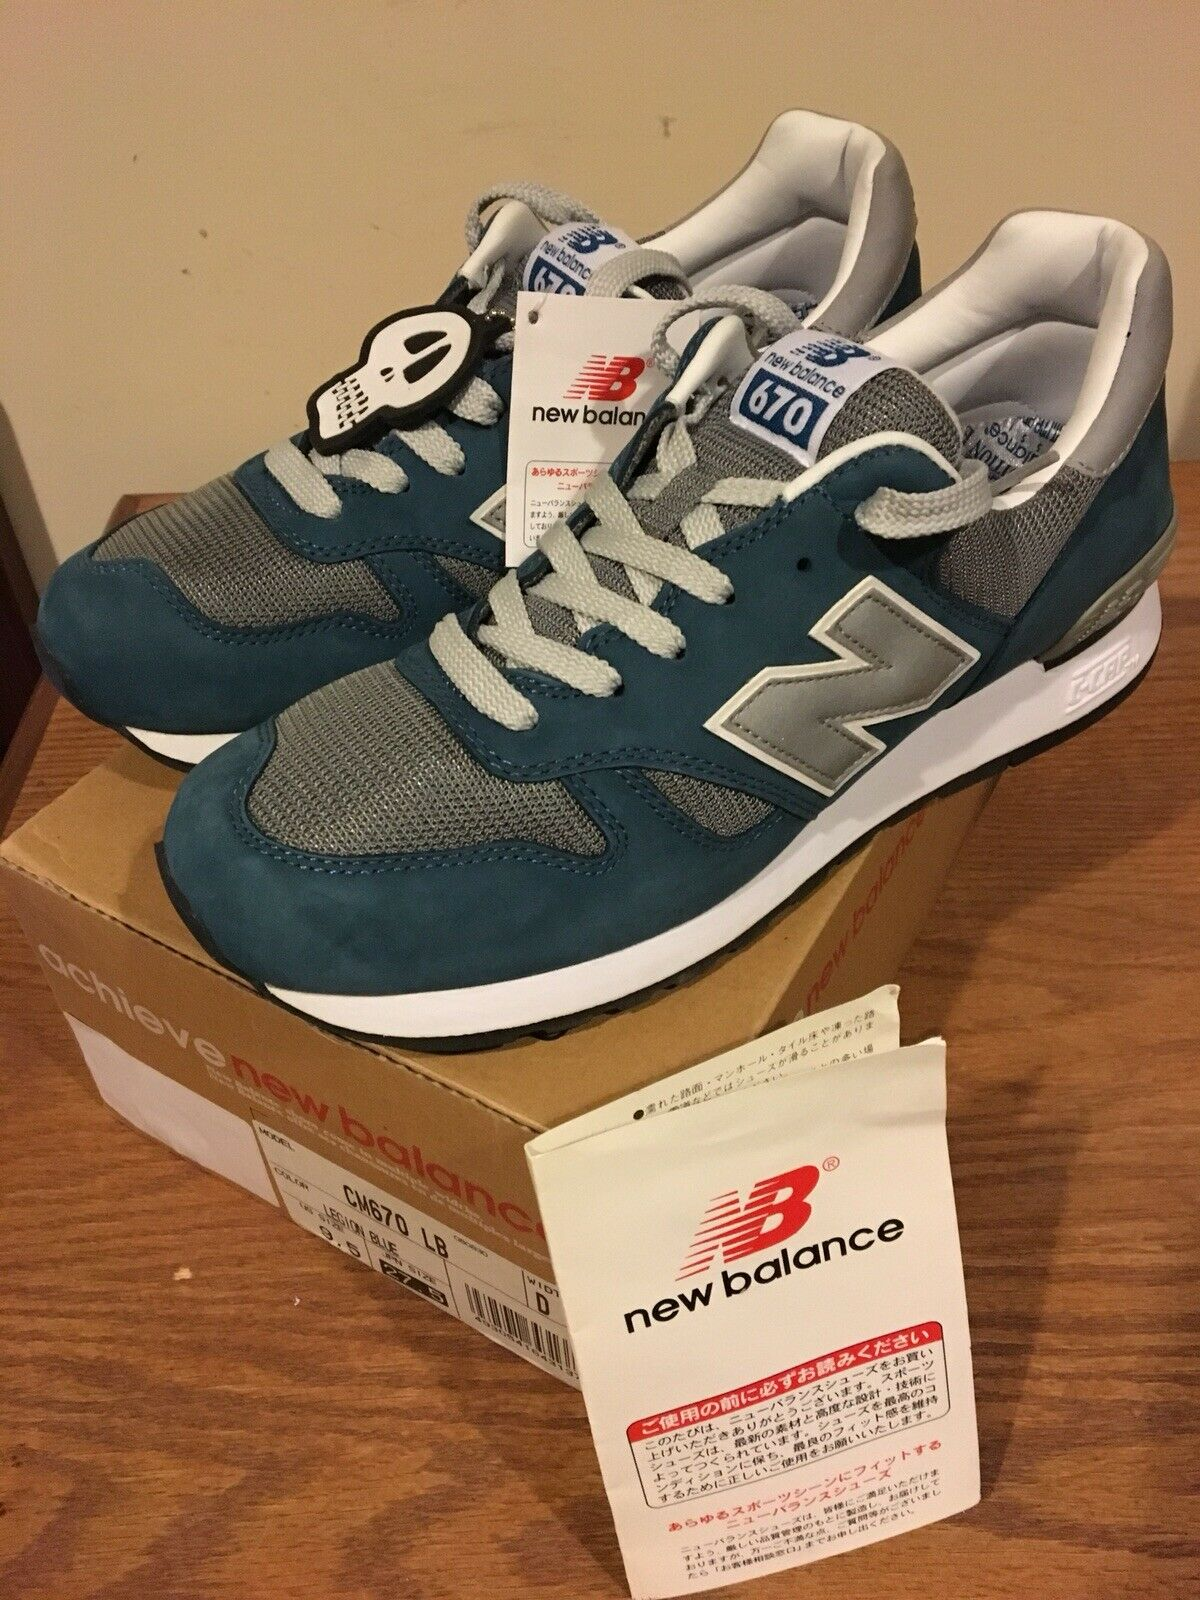 New Balance Stussy Mad Hectic CM 670 LB Legion bluee Size 9.5 New